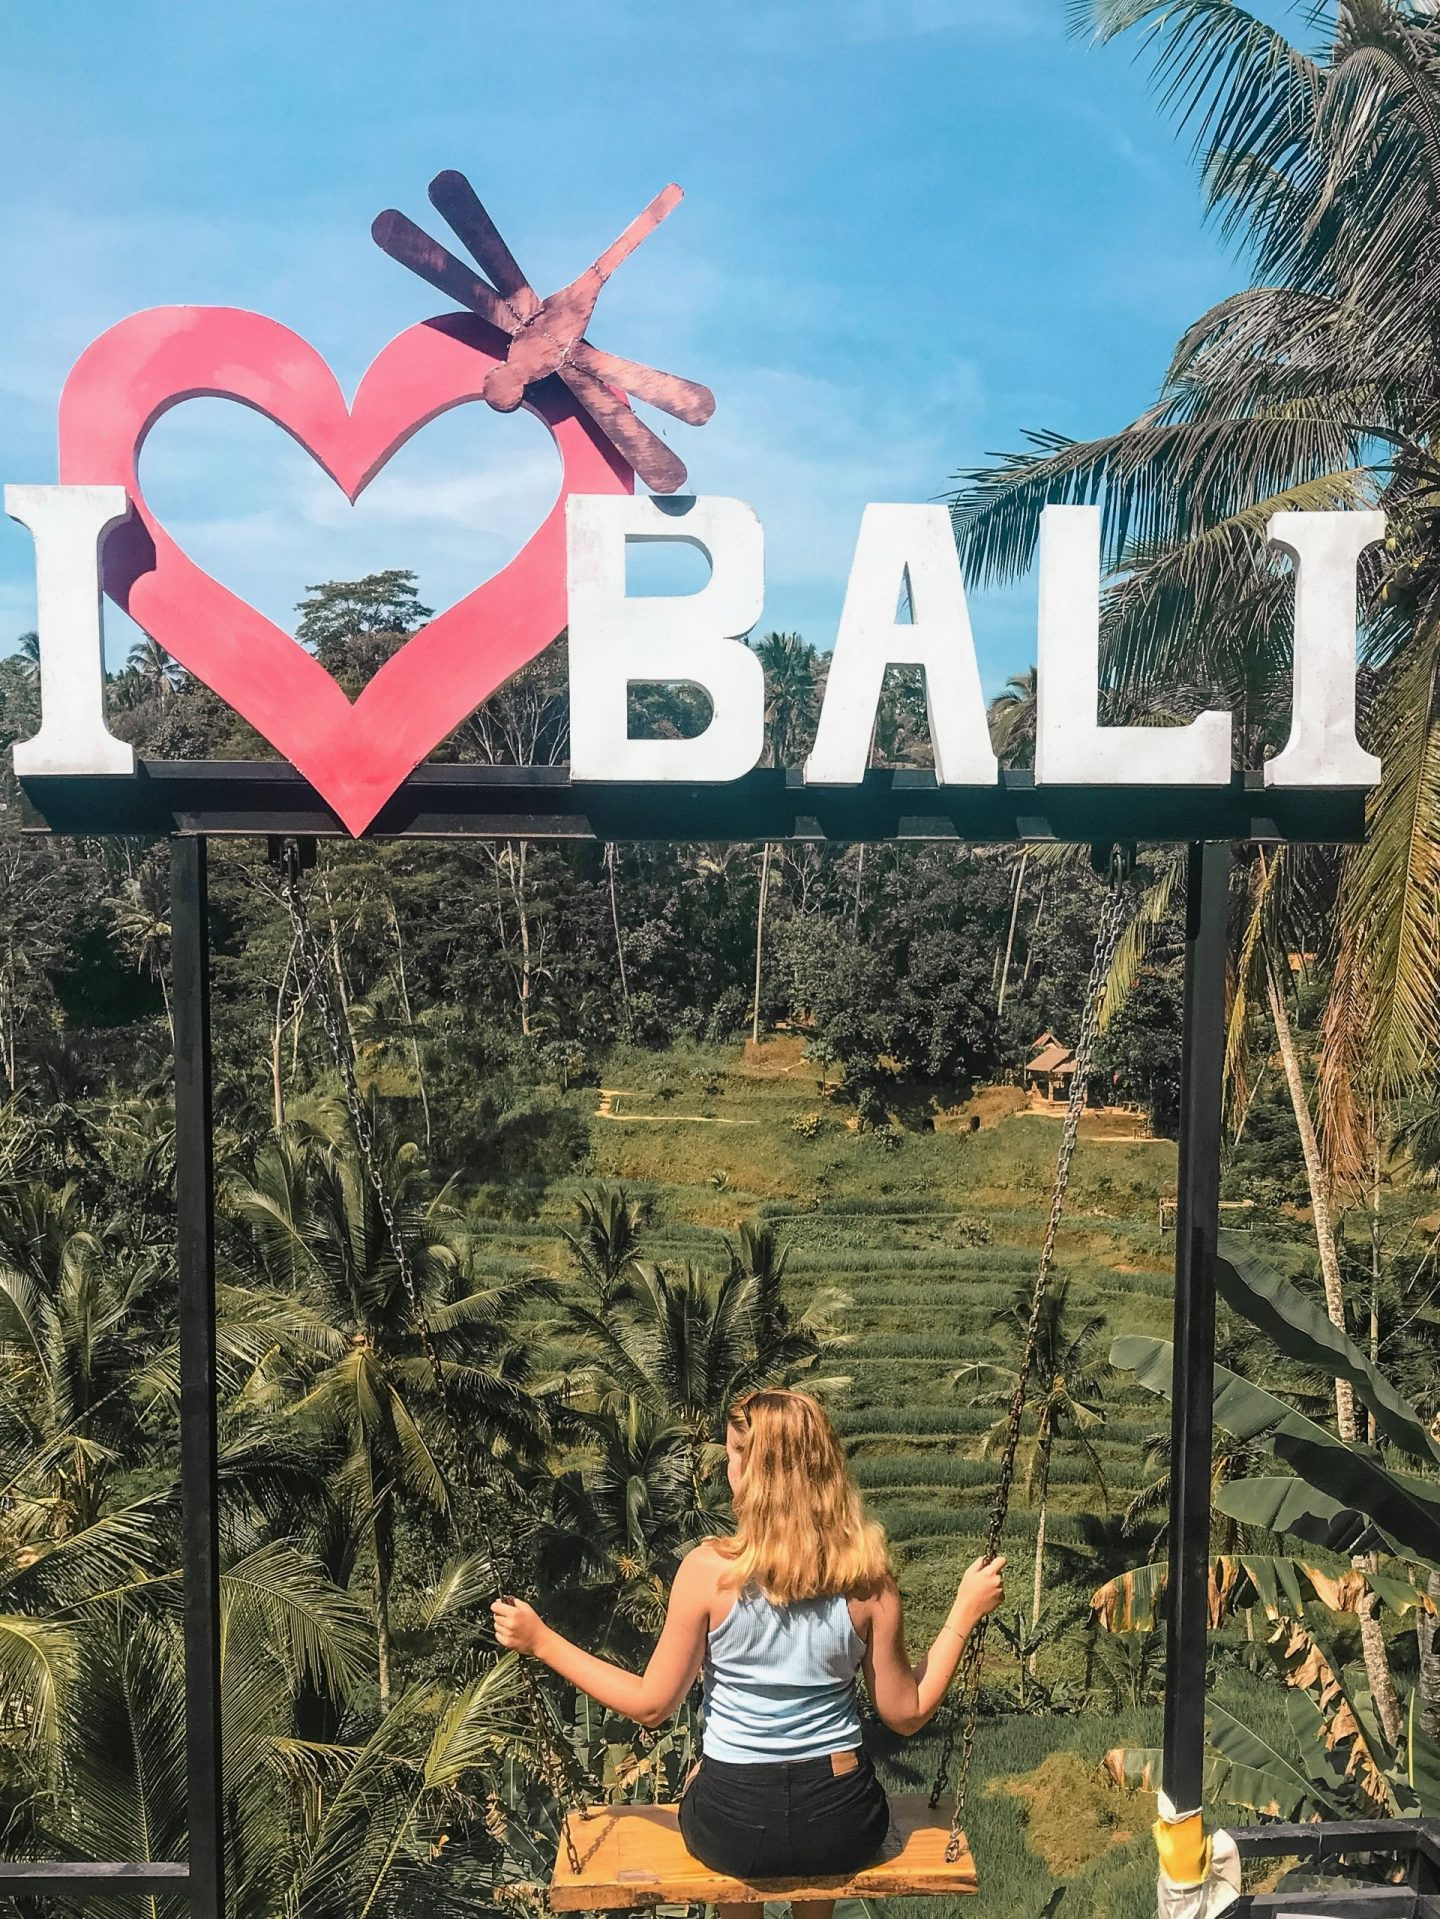 tegallalang rice terrace in central ubud, rice terraces in bali, the most instagrammable places in bali, photography guide, where to take the best pictures in bali, indonesia, bali swing